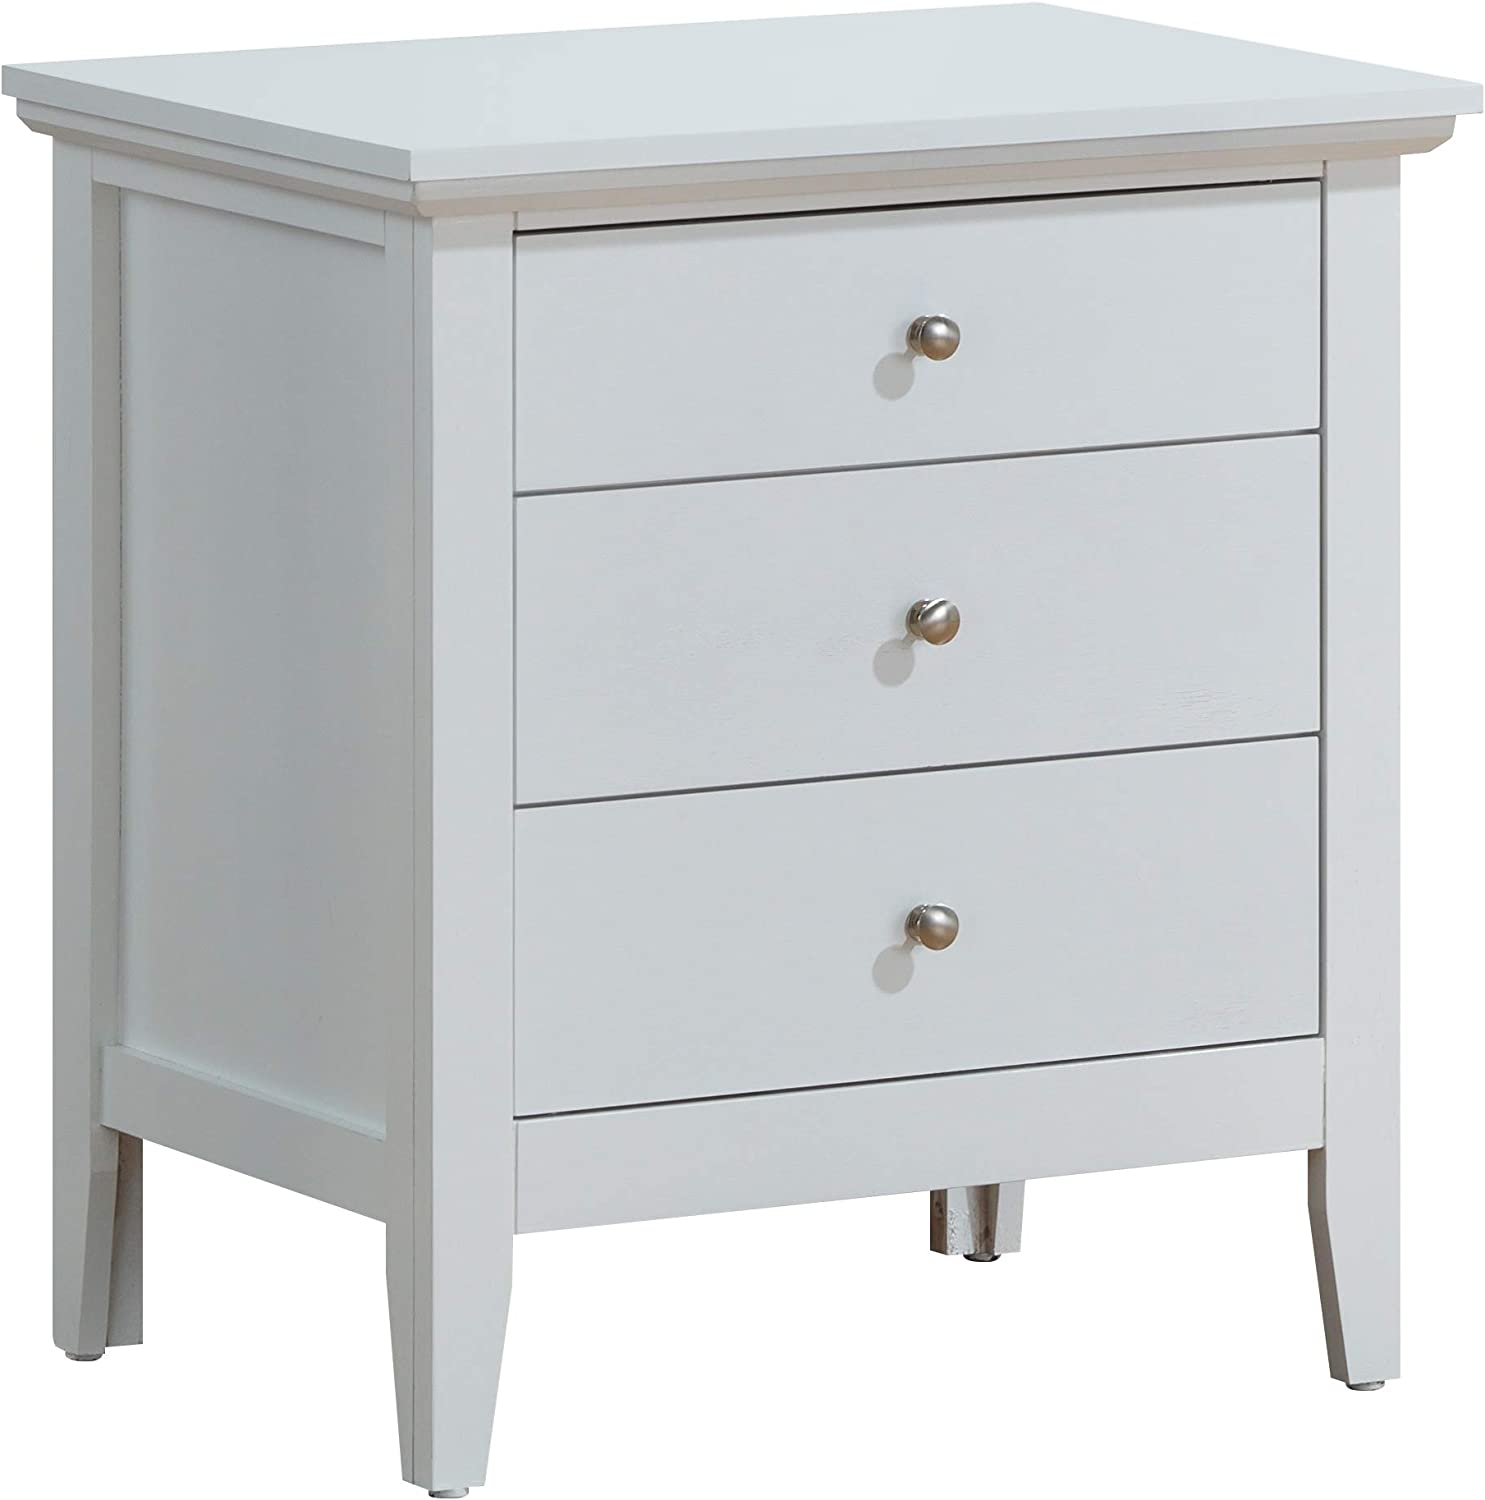 Glory Furniture Hammond Fully Assembled White Top Quality Wood 3 Drawer Luxury Bedroom Furniture Nightstand, 26 H x 24 W x 18 D,